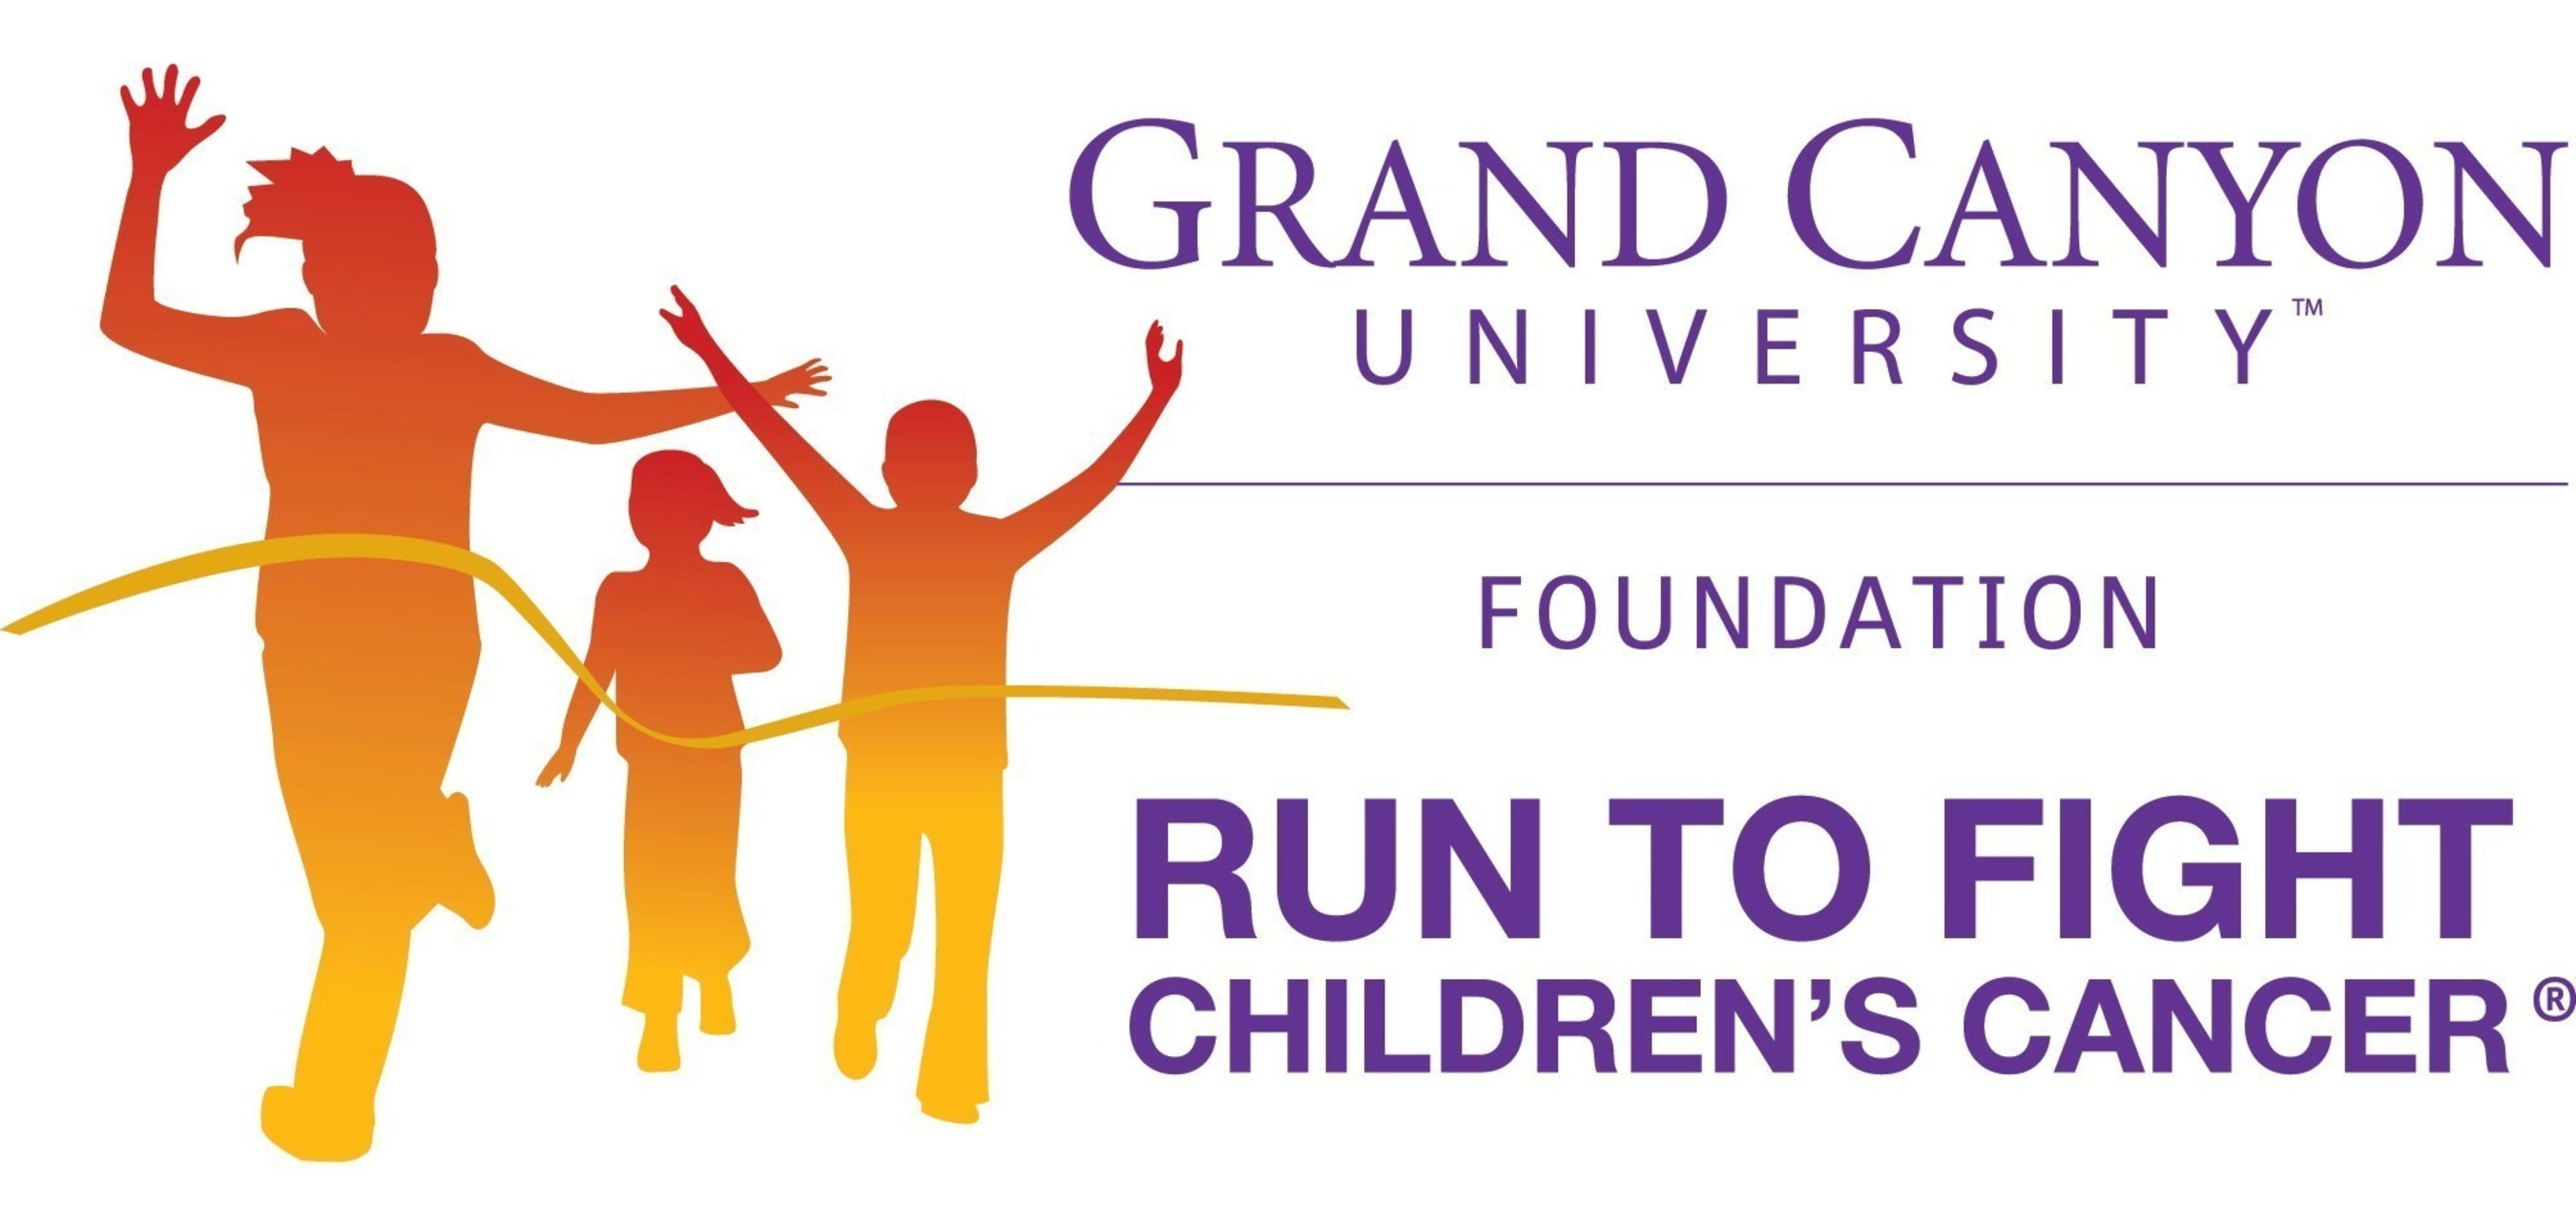 Grand Canyon University Foundation's Run to Fight Children's Cancer